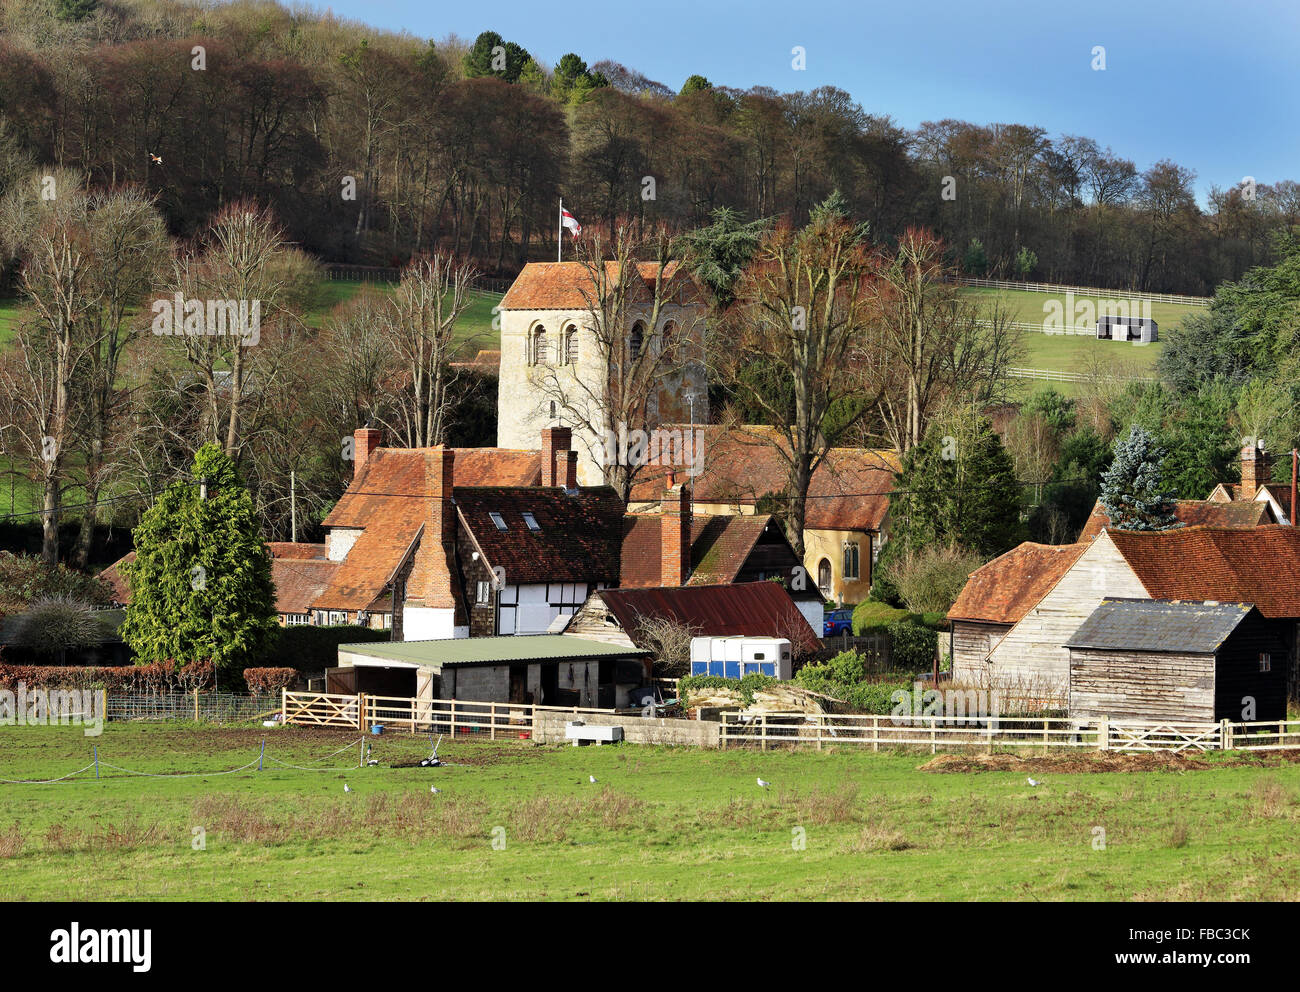 An English Rural Hamlet in the Chiltern Hills bathed in Winter sunshine - Stock Image